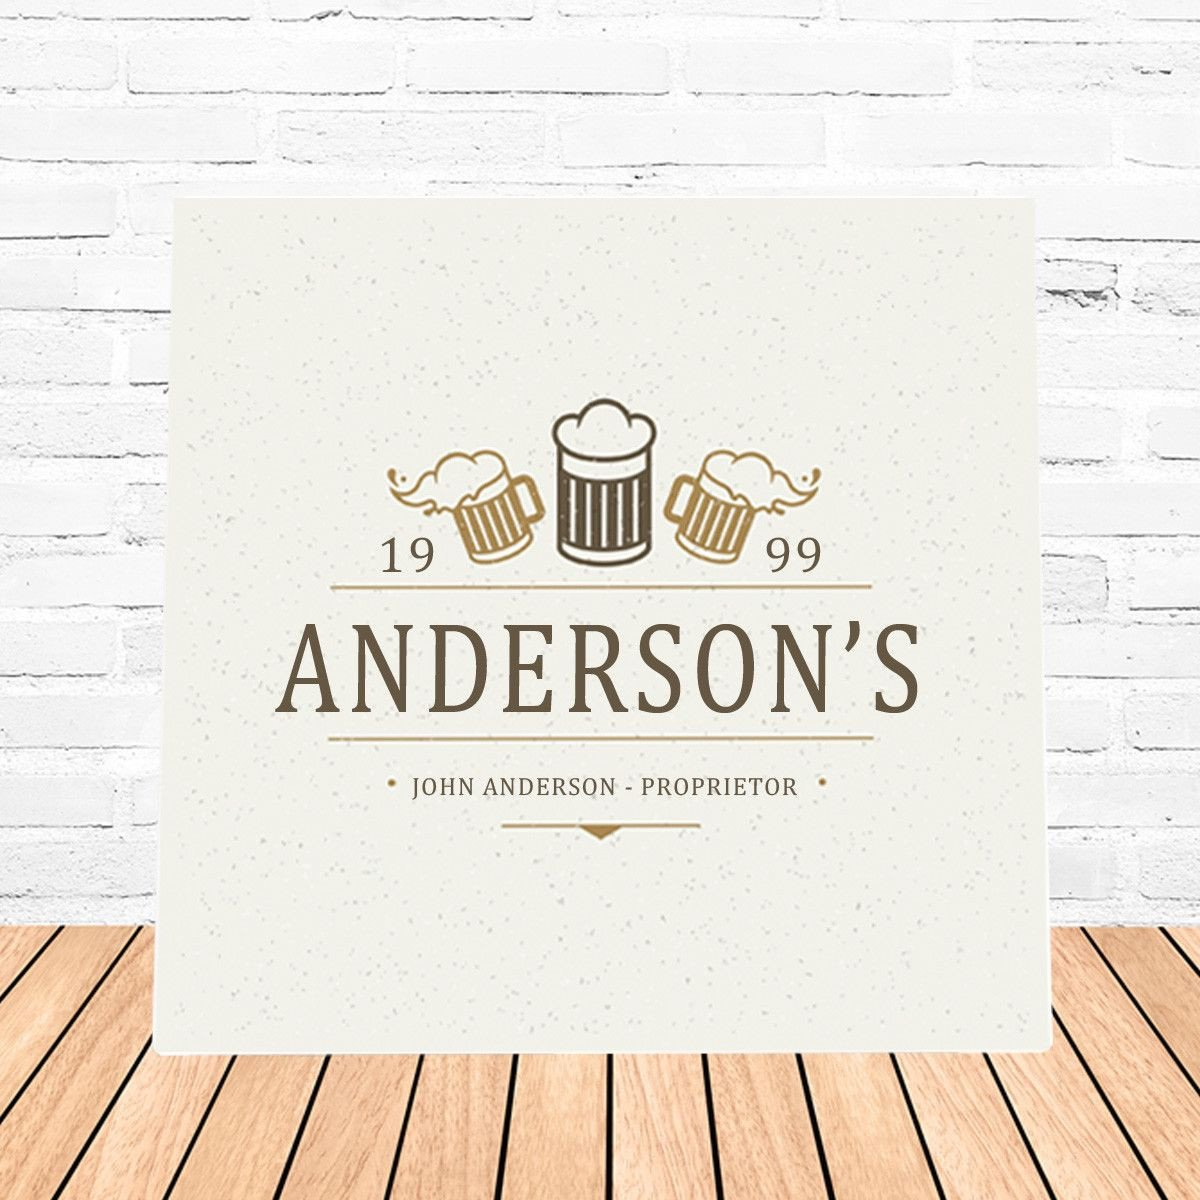 Personalized-Beer-Mugs-Canvas-Sign